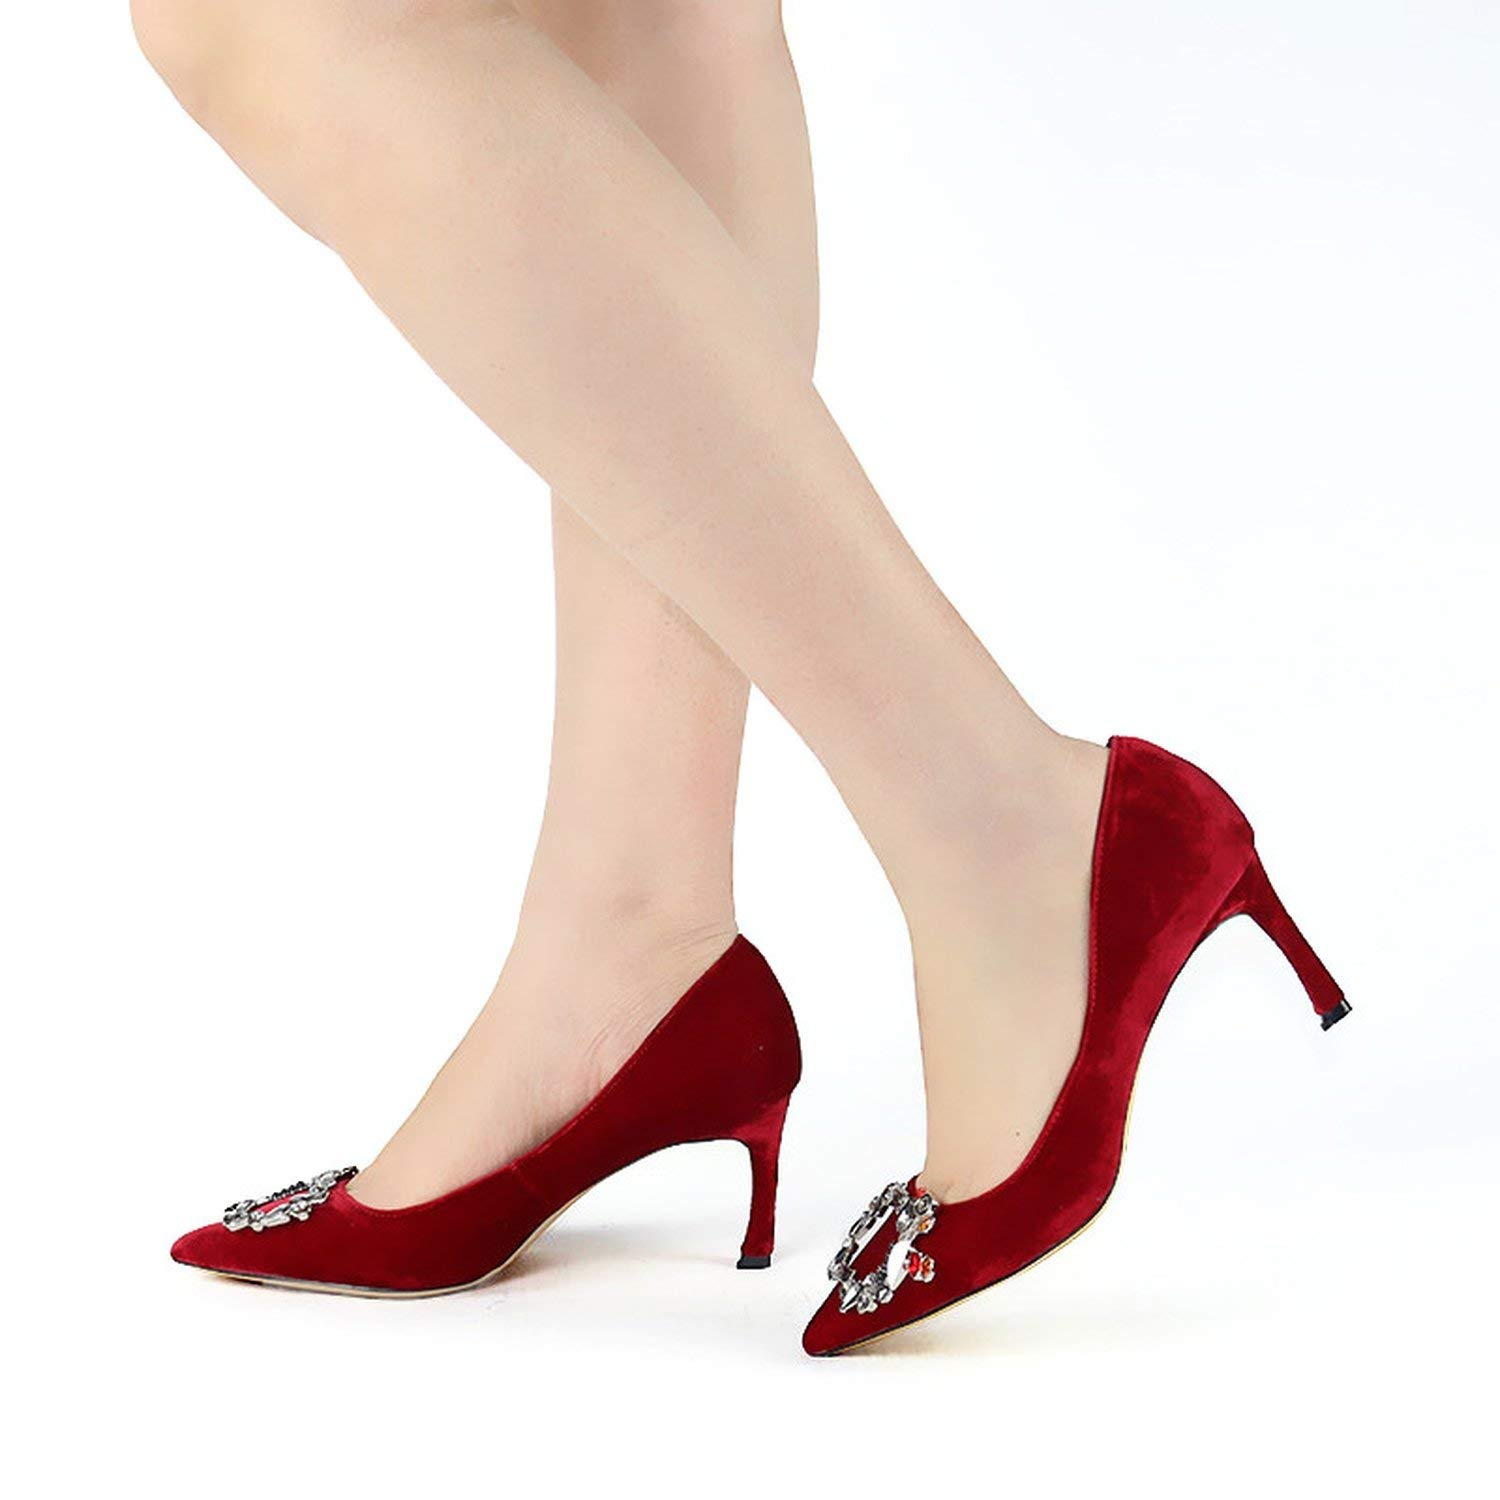 Genuine Leather Women Pumps High Heels Shoes Spring Brand Thin Heel Wedding Shoes Woman Pointed Toe Crystal Royal Blue Pumps DO,Red,6.5